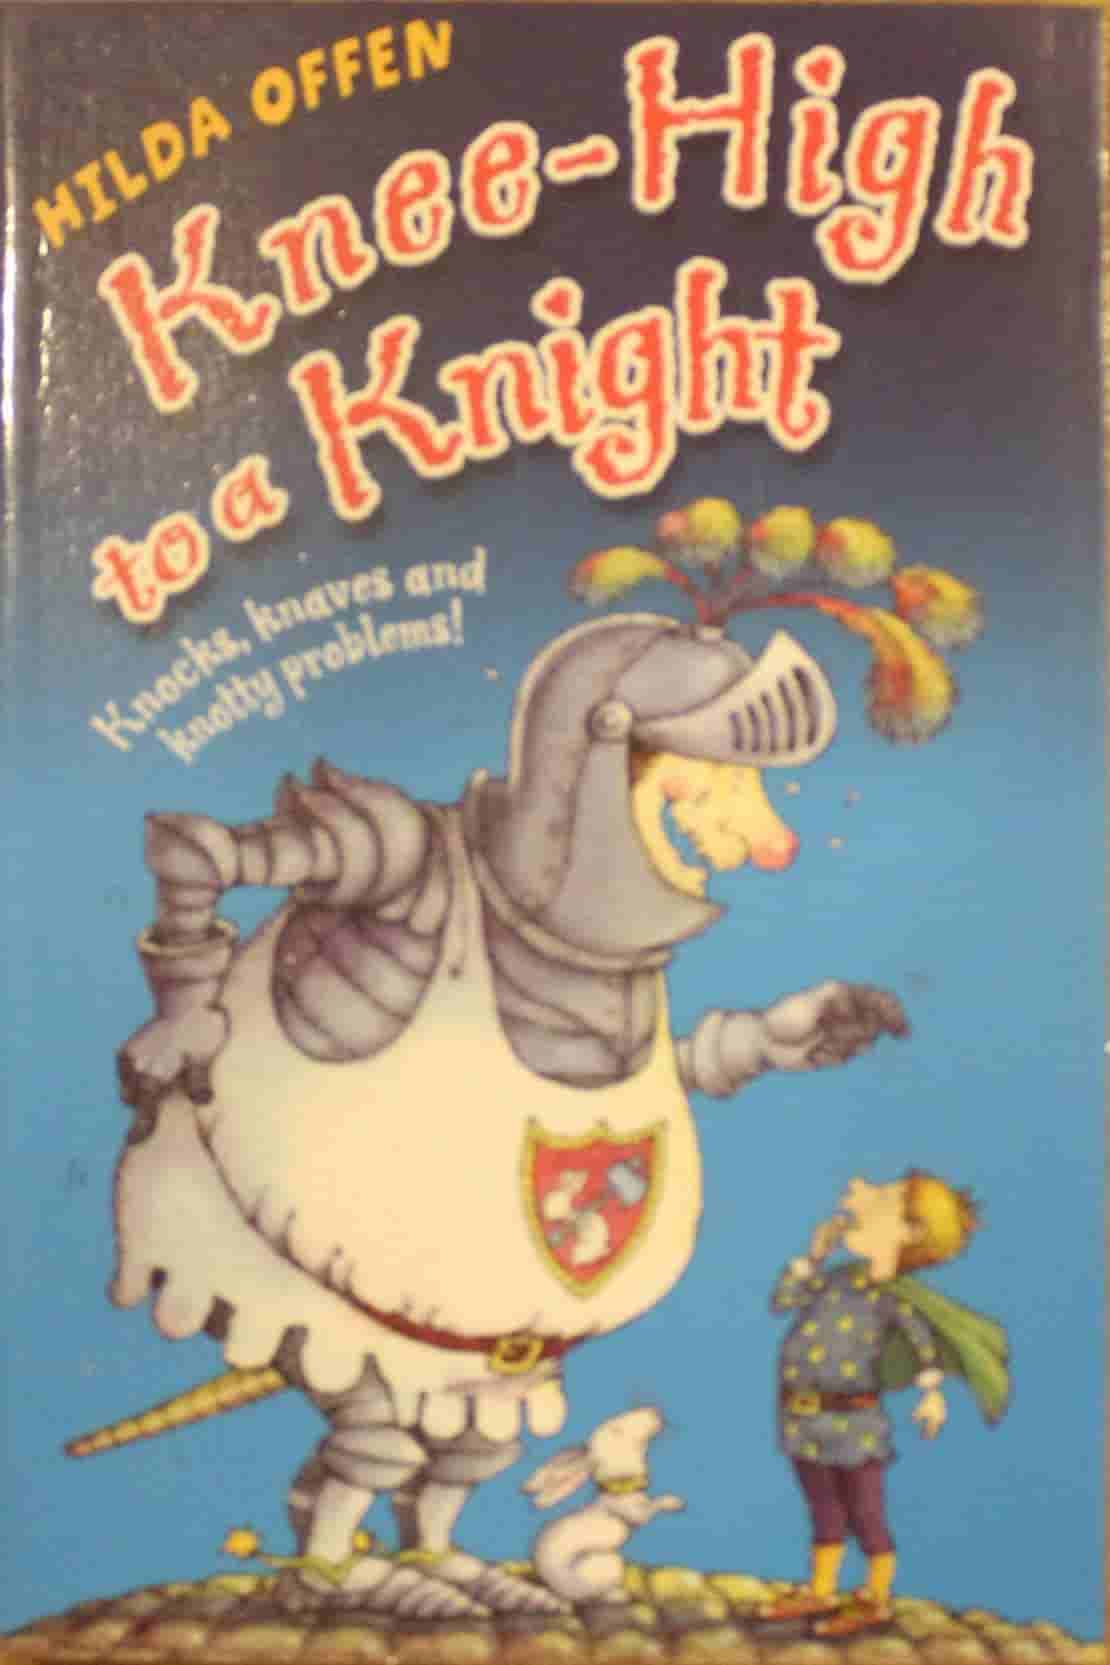 KNEE HIGH TO A KNIGHT